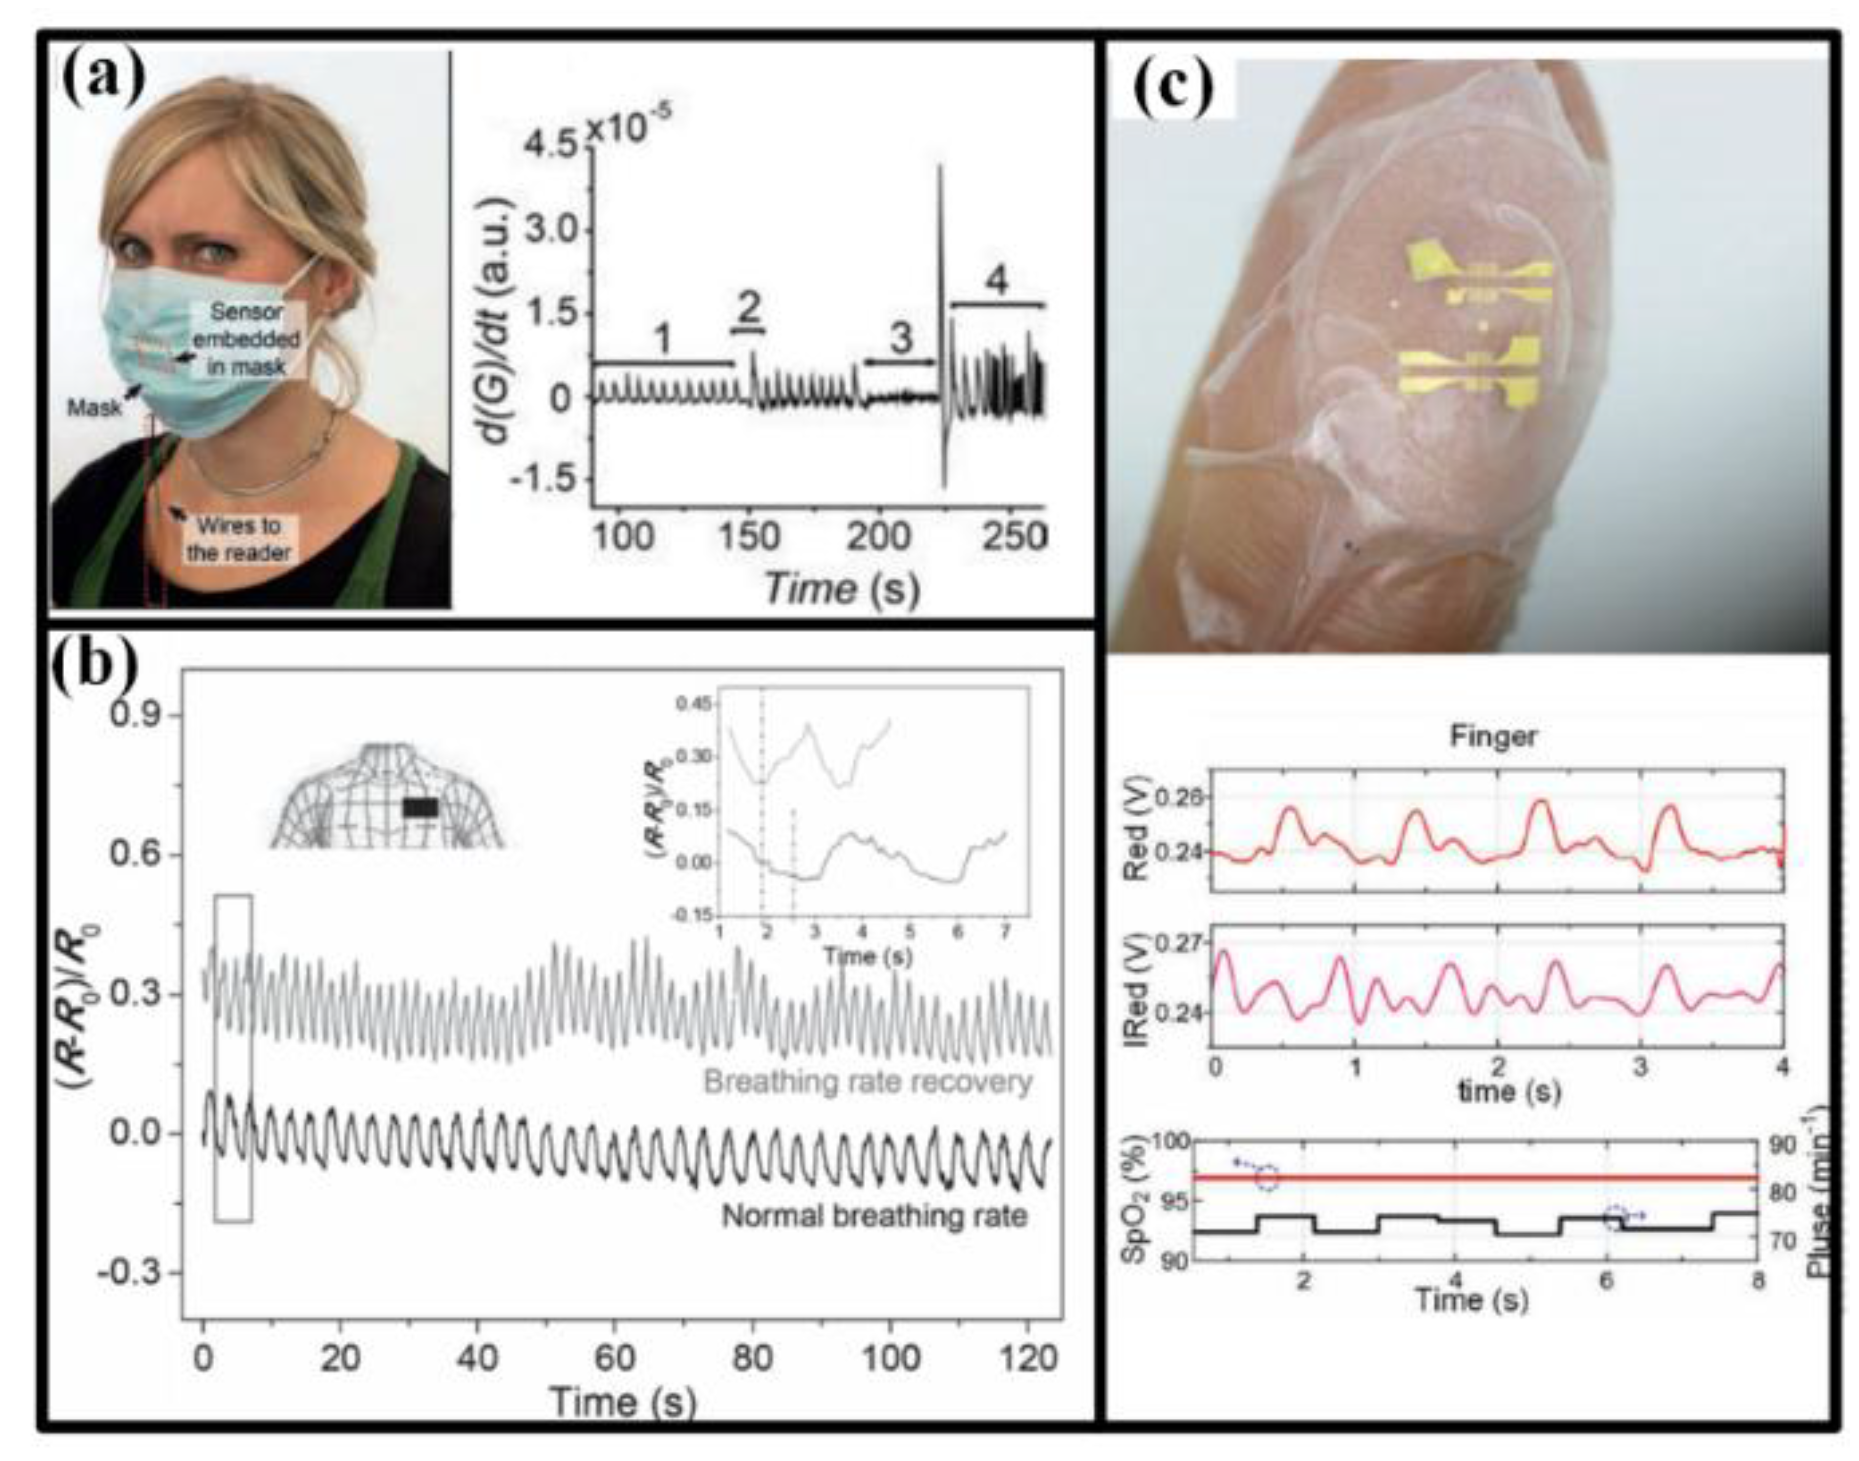 Sensors Free Full Text Flexible Stretchable For Design Of A Human Machine Interface Hmi Heartrate Monitor Heart Rate Pulse And Ecg